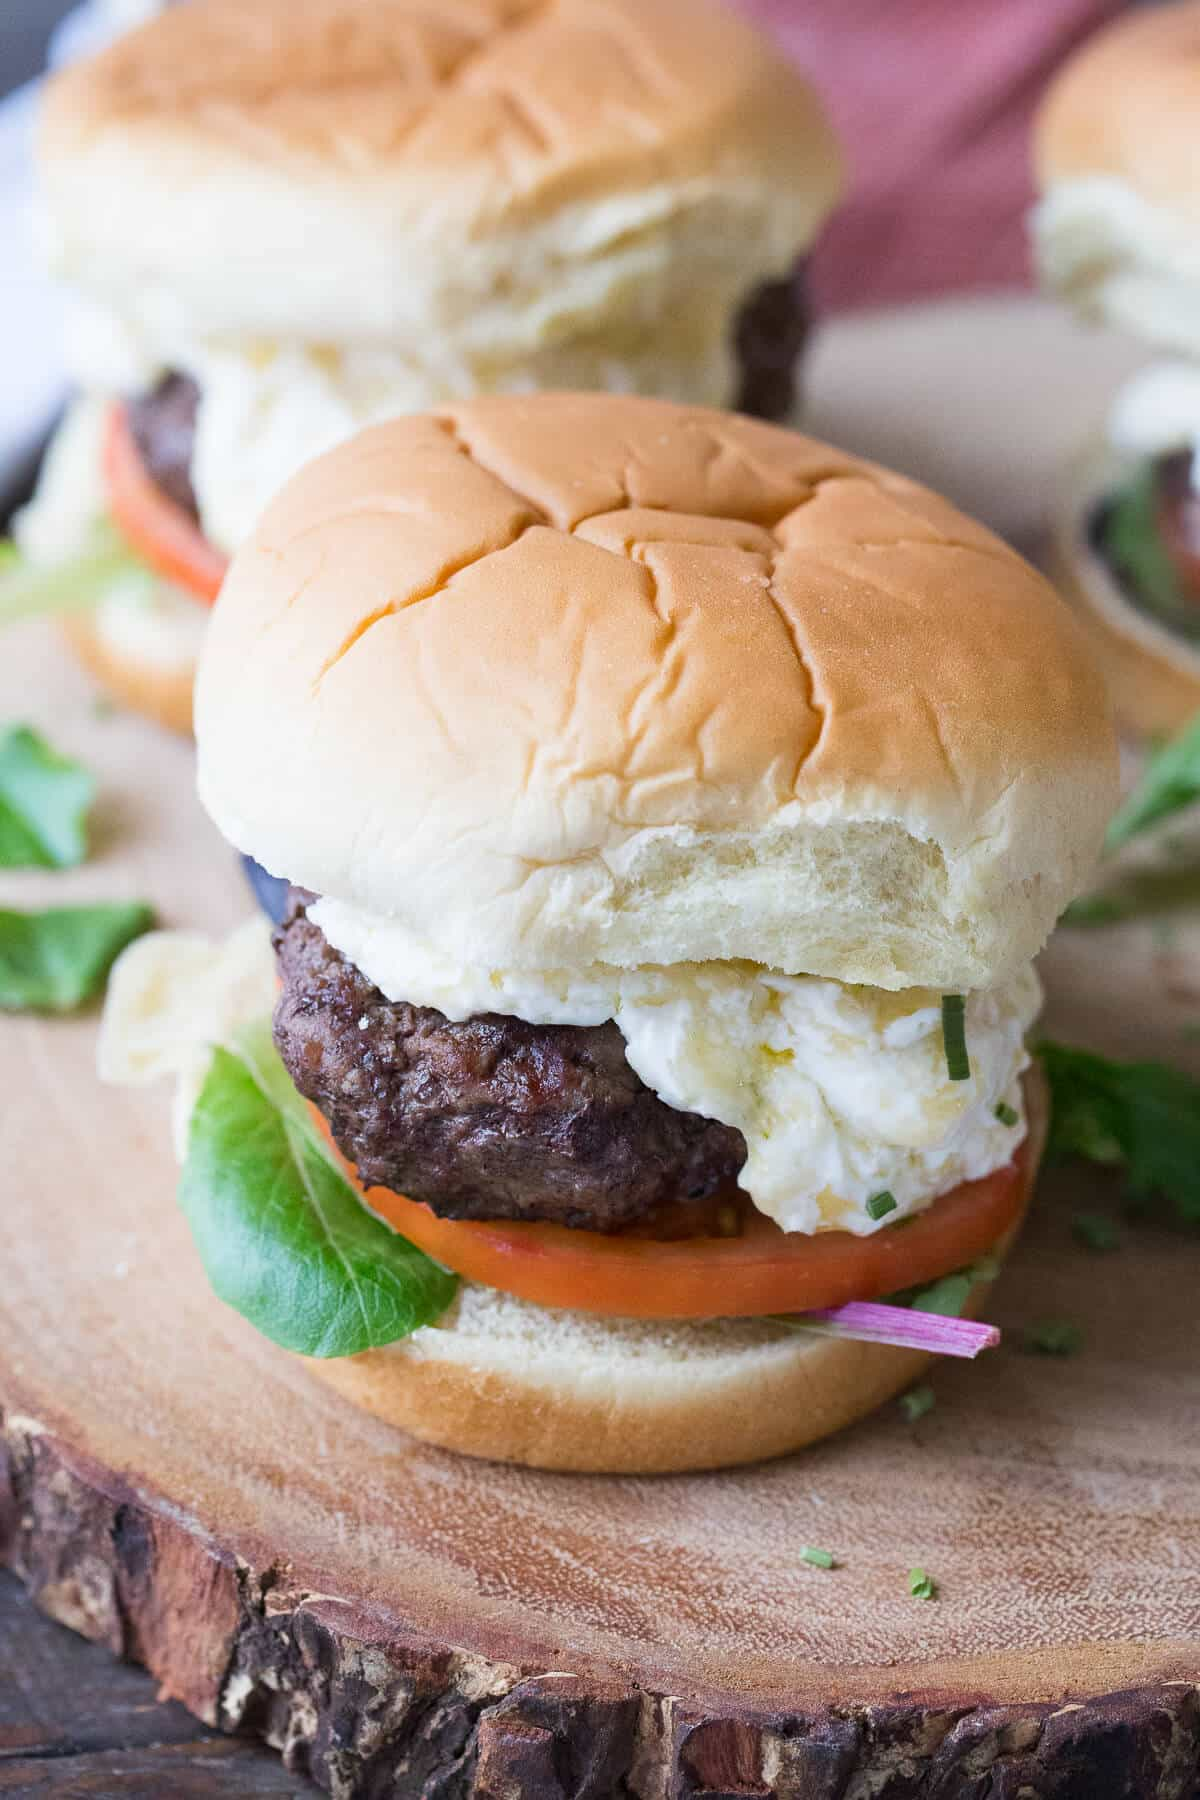 These horseradish cheddar burgers and so thick and juicy and have just the right amount of topping!